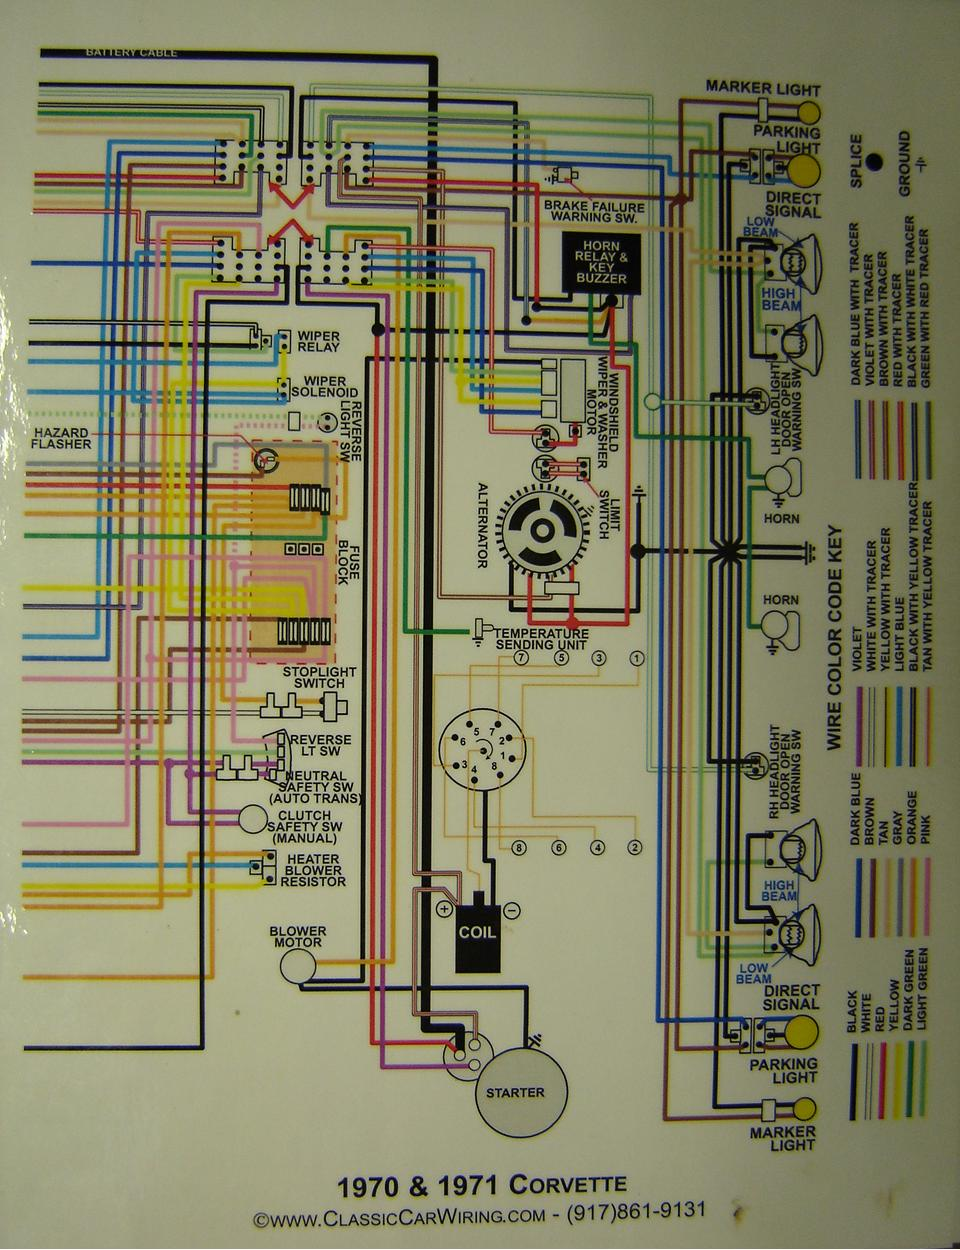 Corvette Wiring Diagram Corvette Starter Wiring Diagram How To Wire Up